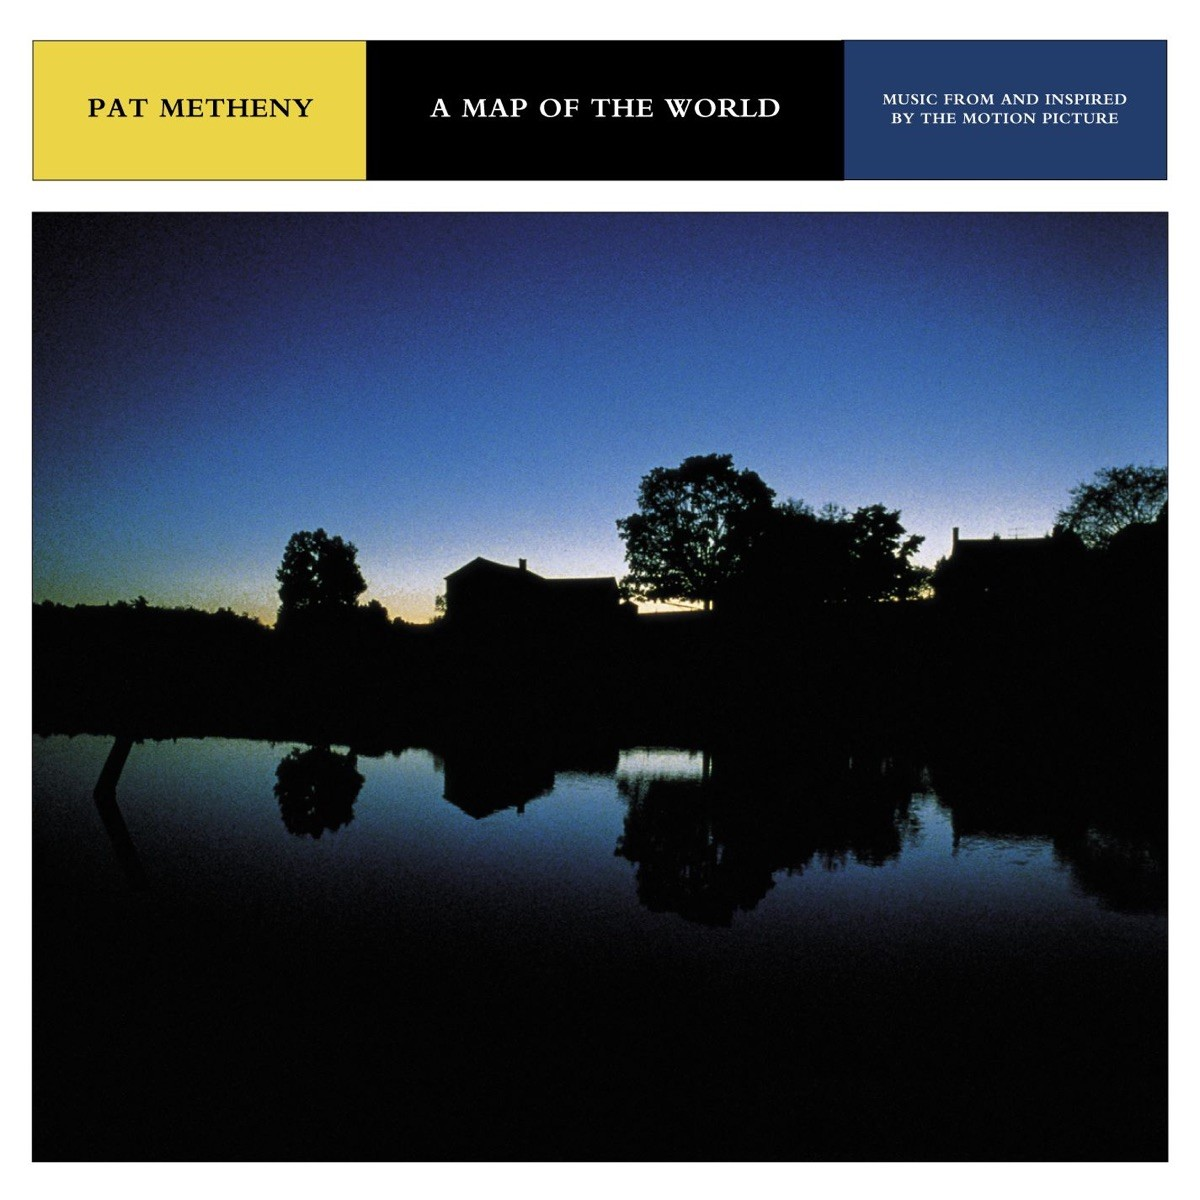 Pat Metheny - A Map of the World (Music From and Inspired By the Motion Picture) CD - 9362473662